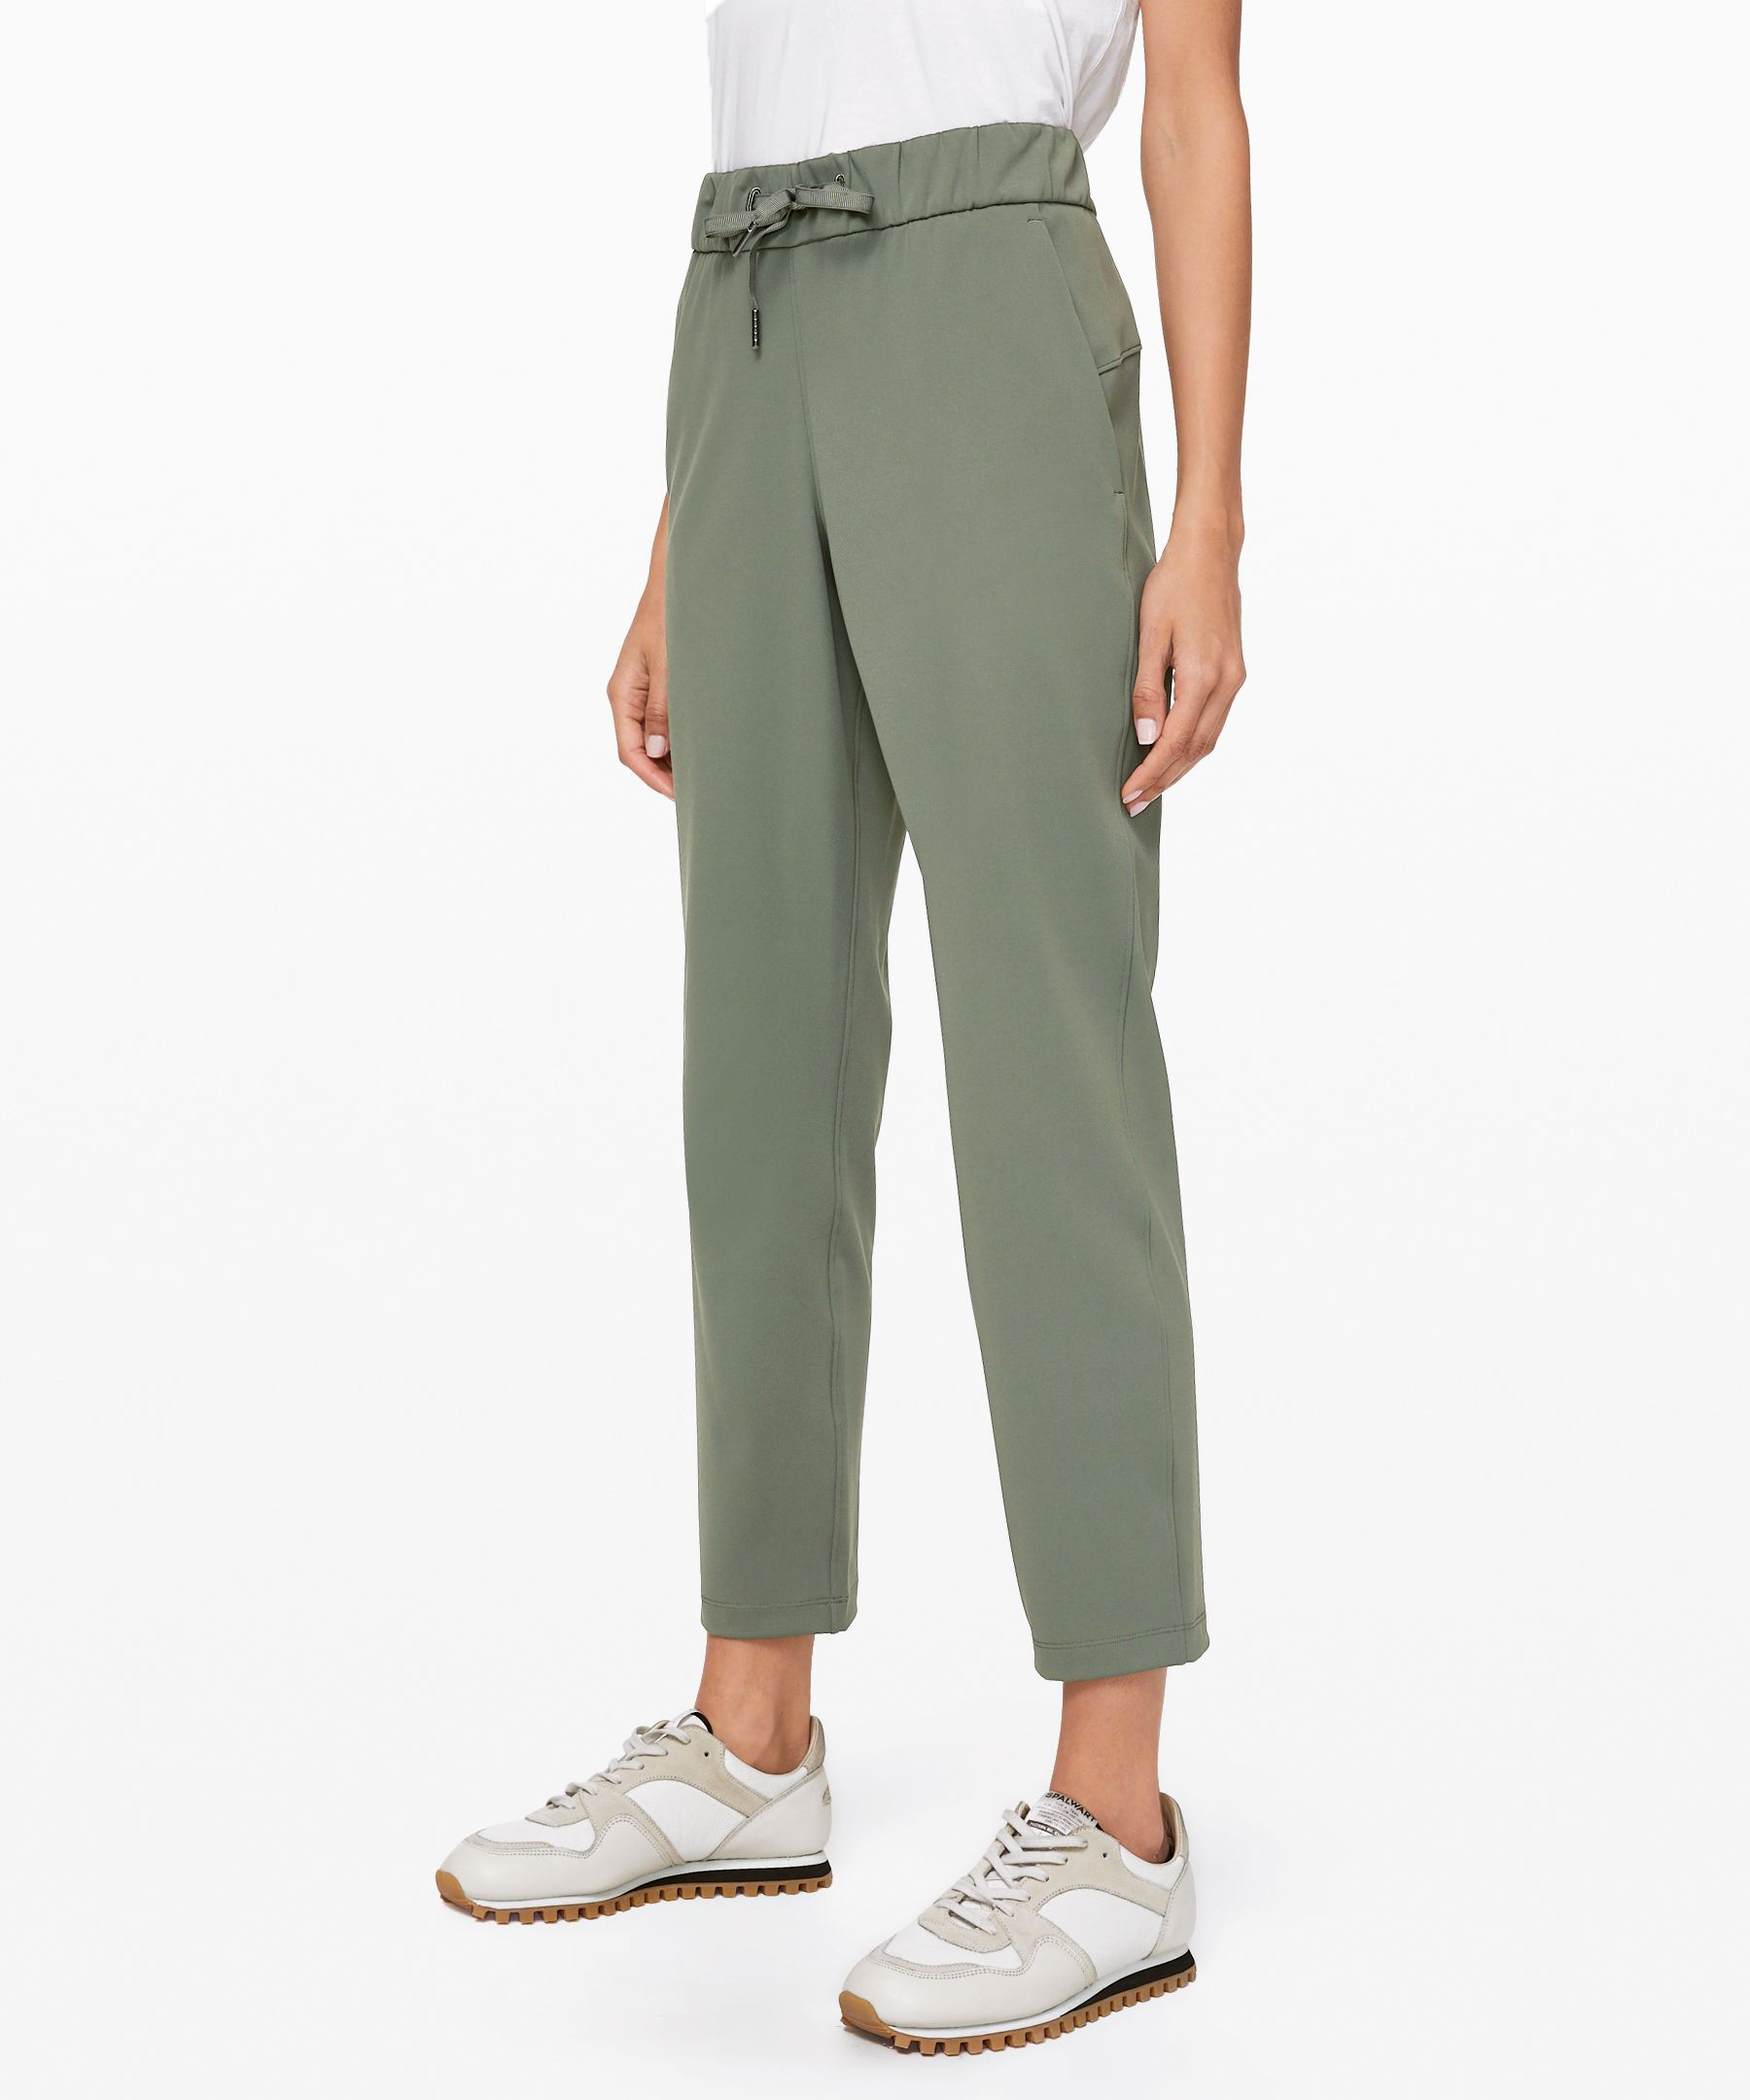 1cb83bf491 On the Fly 7/8 Pant | Women's Pants | lululemon athletica